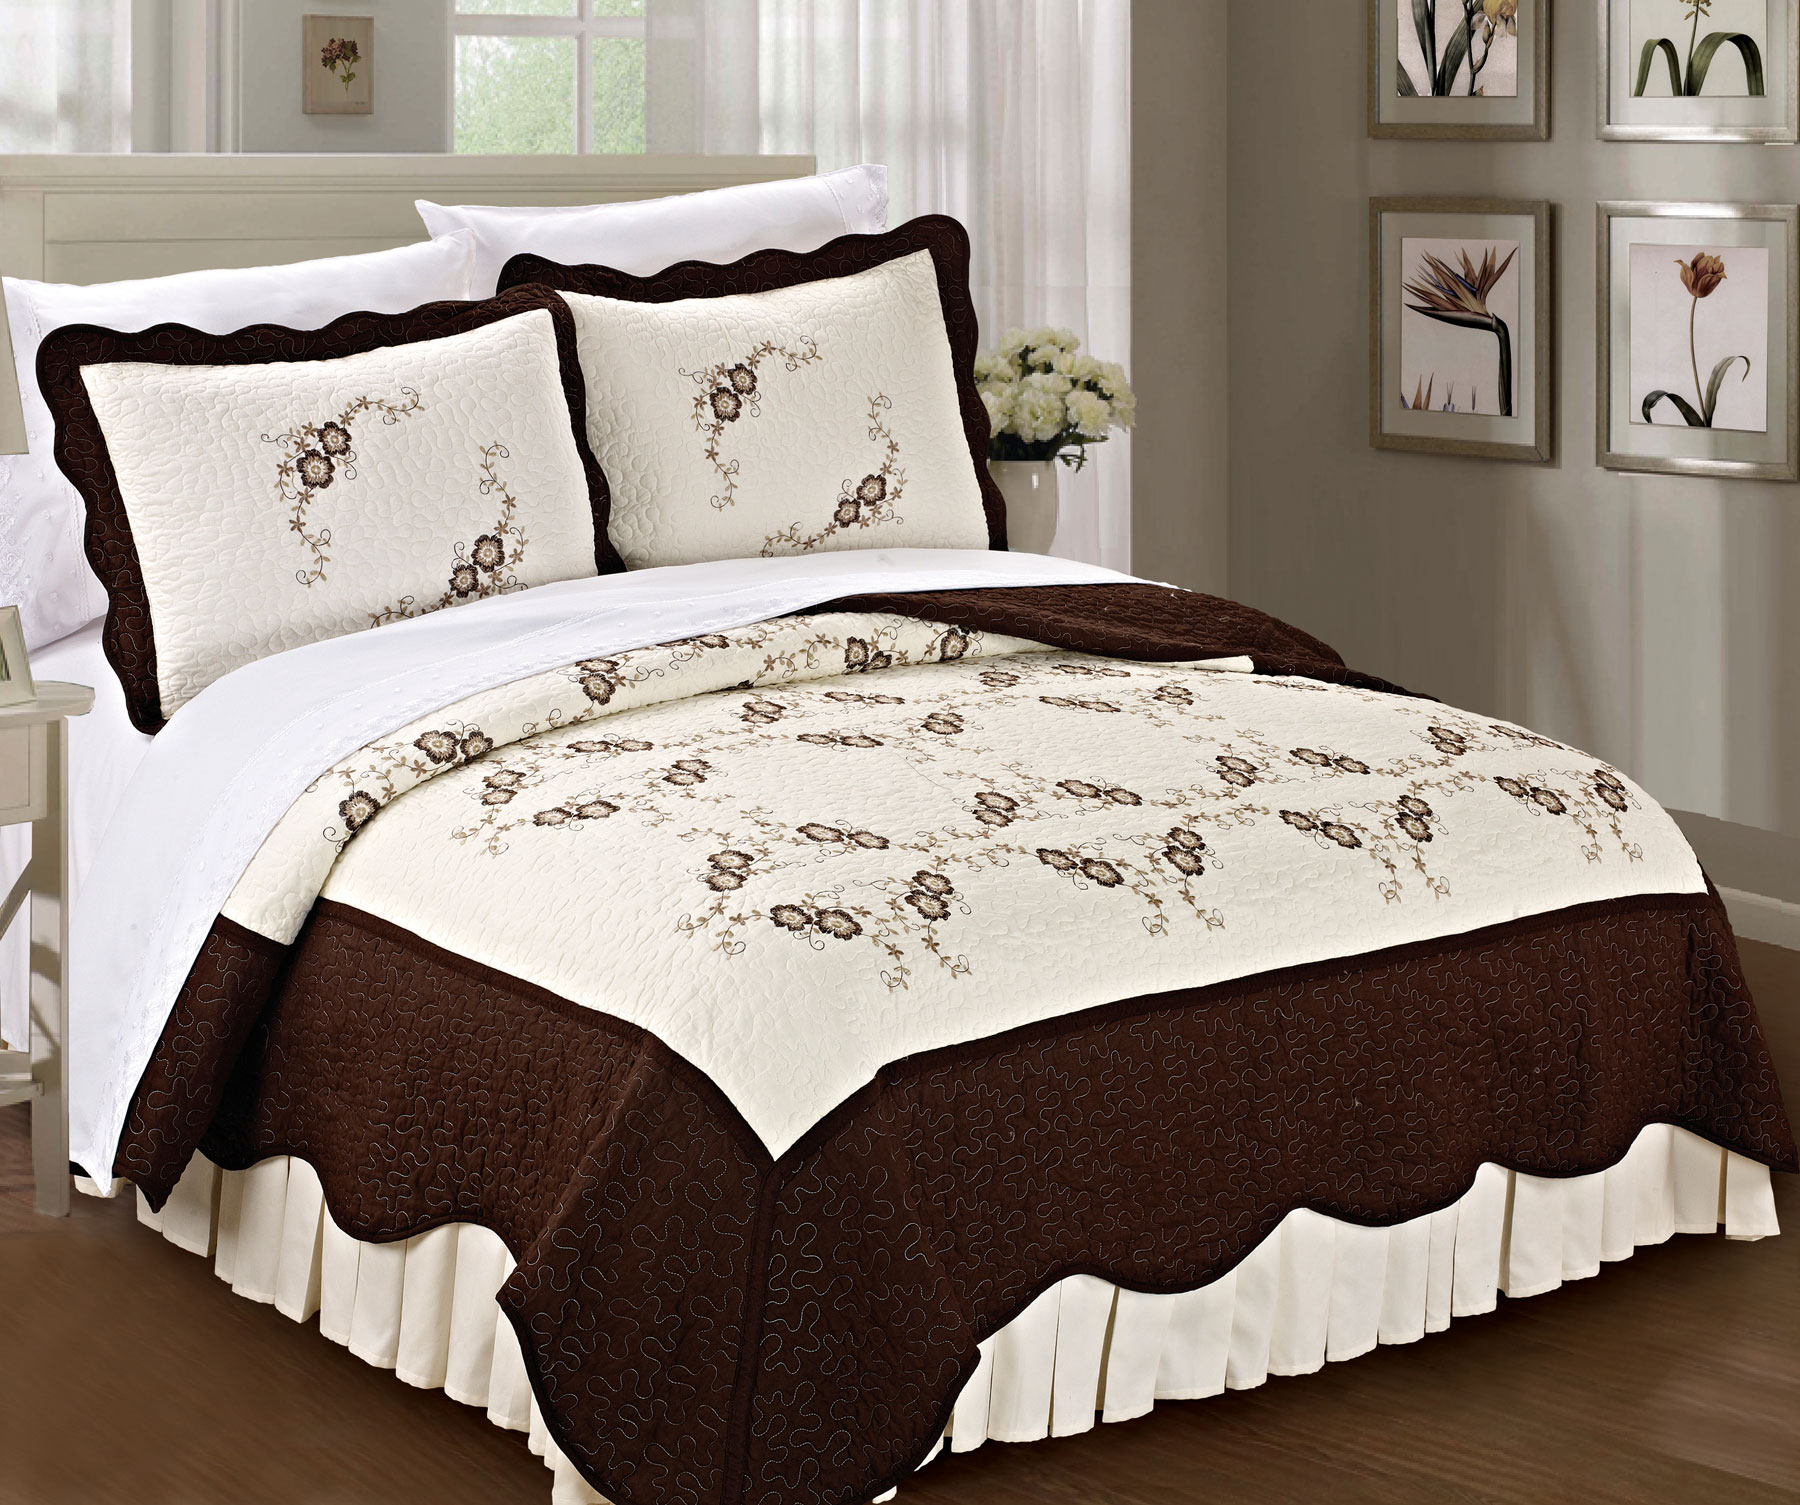 Chrysanthemum Bed Spread Quilt Is Known For Perfection